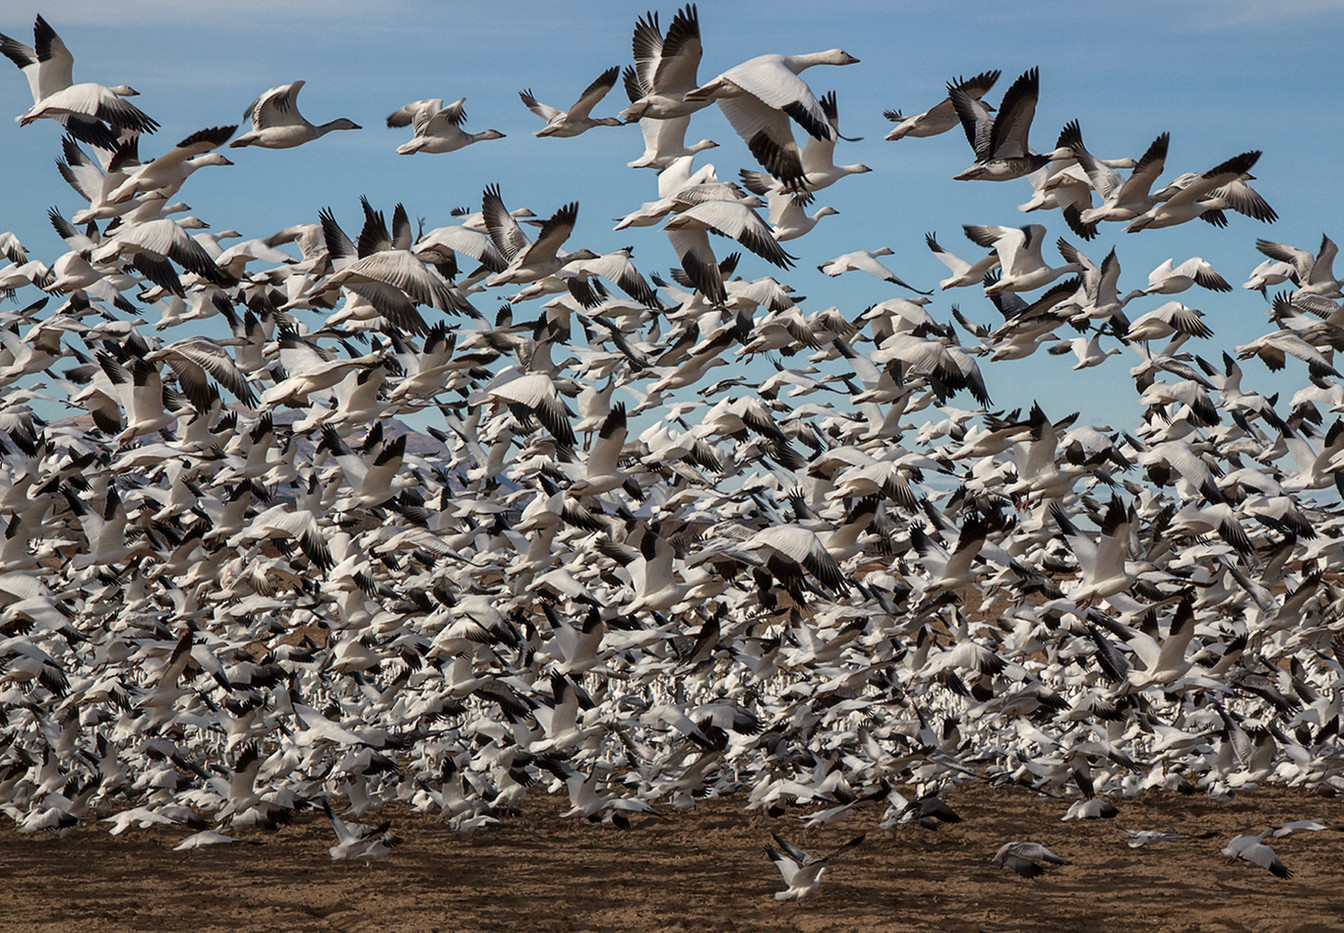 17 SNOW GEESE LIFT OFF by Pam Sherren